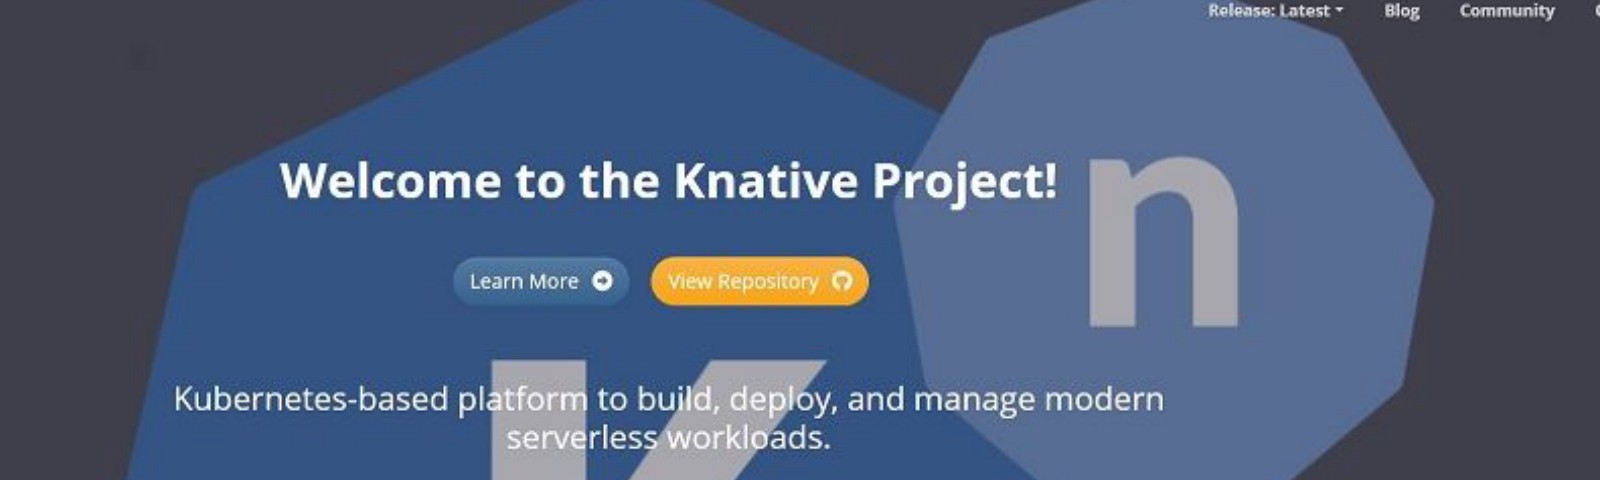 How to deployment Knative on Azure Kubernetes Service (AKS